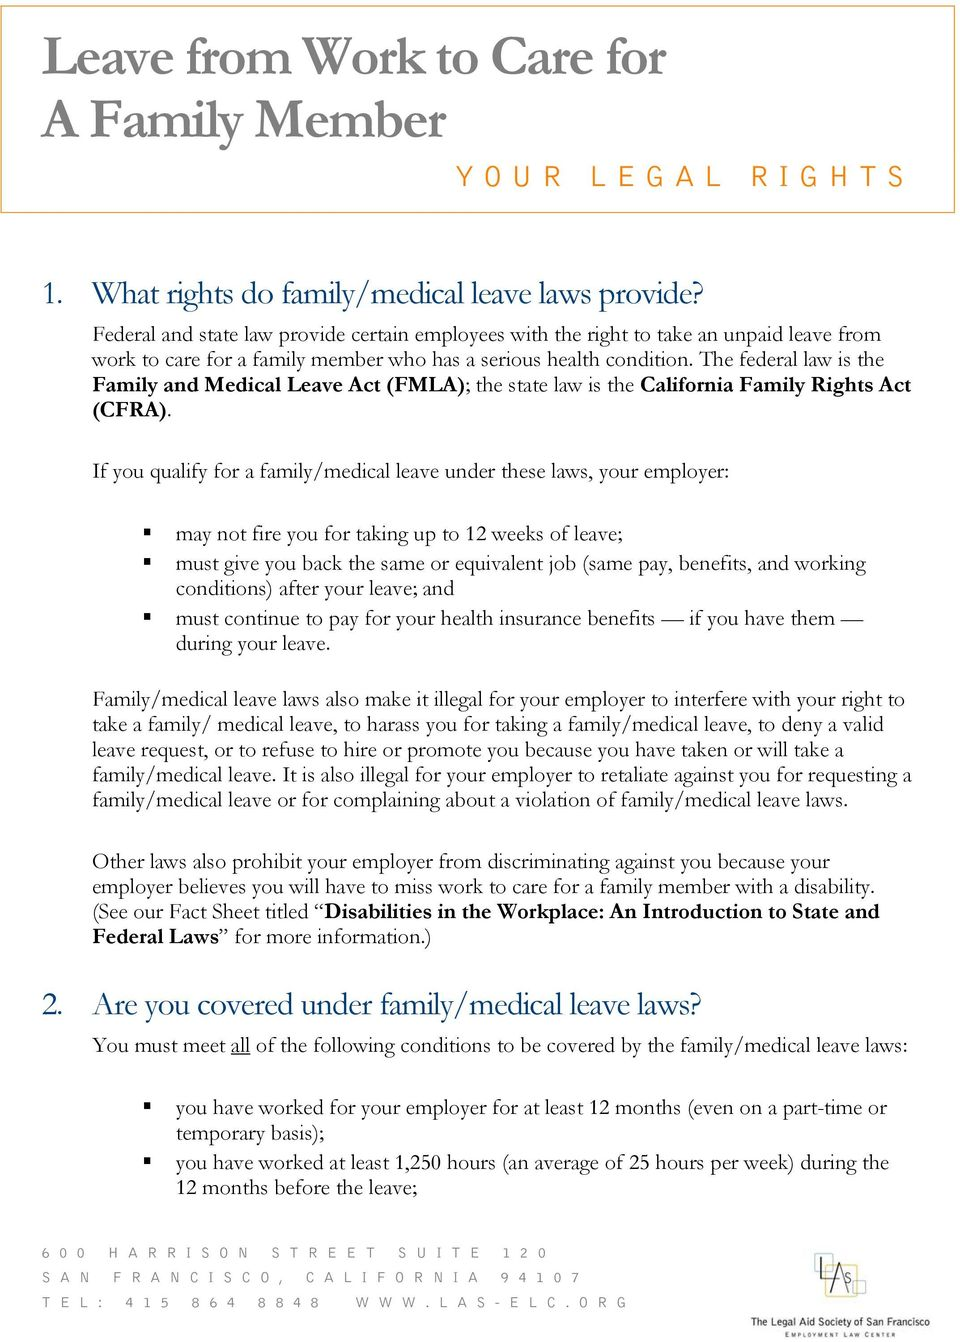 The federal law is the Family and Medical Leave Act (FMLA); the state law is the California Family Rights Act (CFRA).